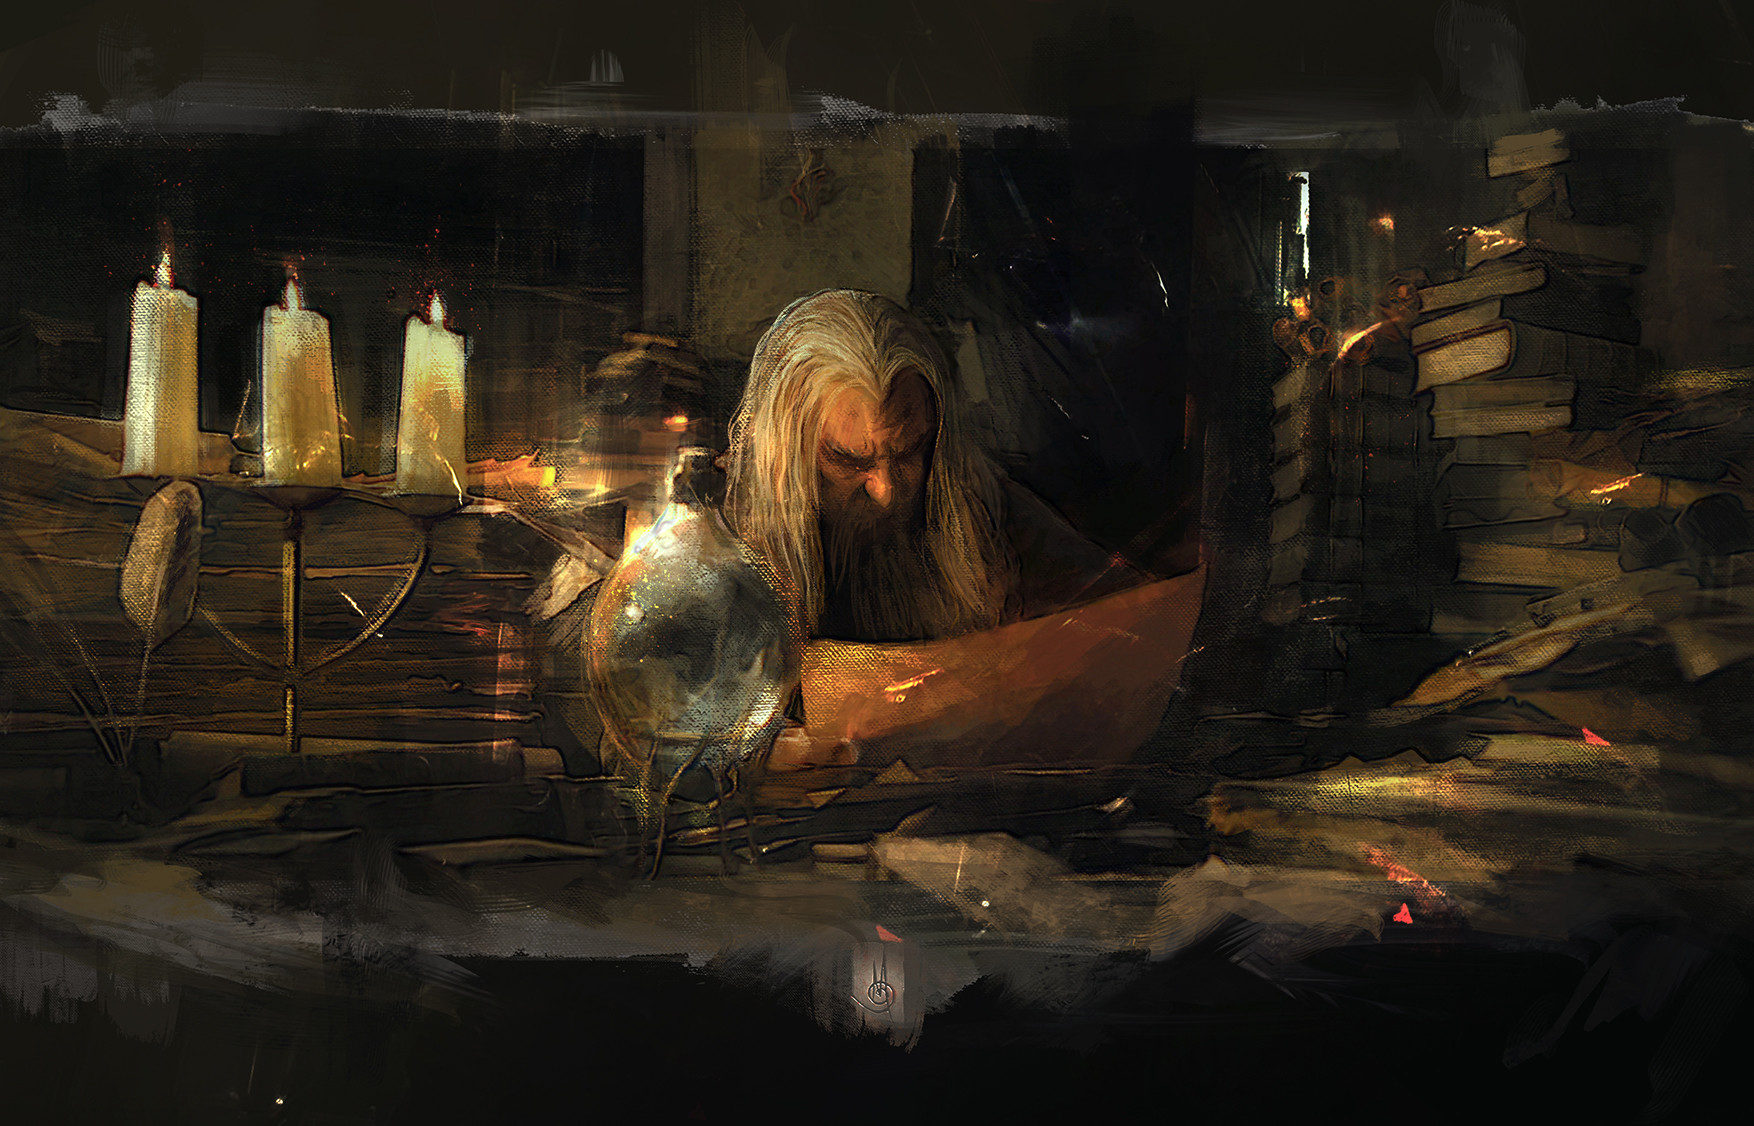 Murat gul gandalf by muratgul